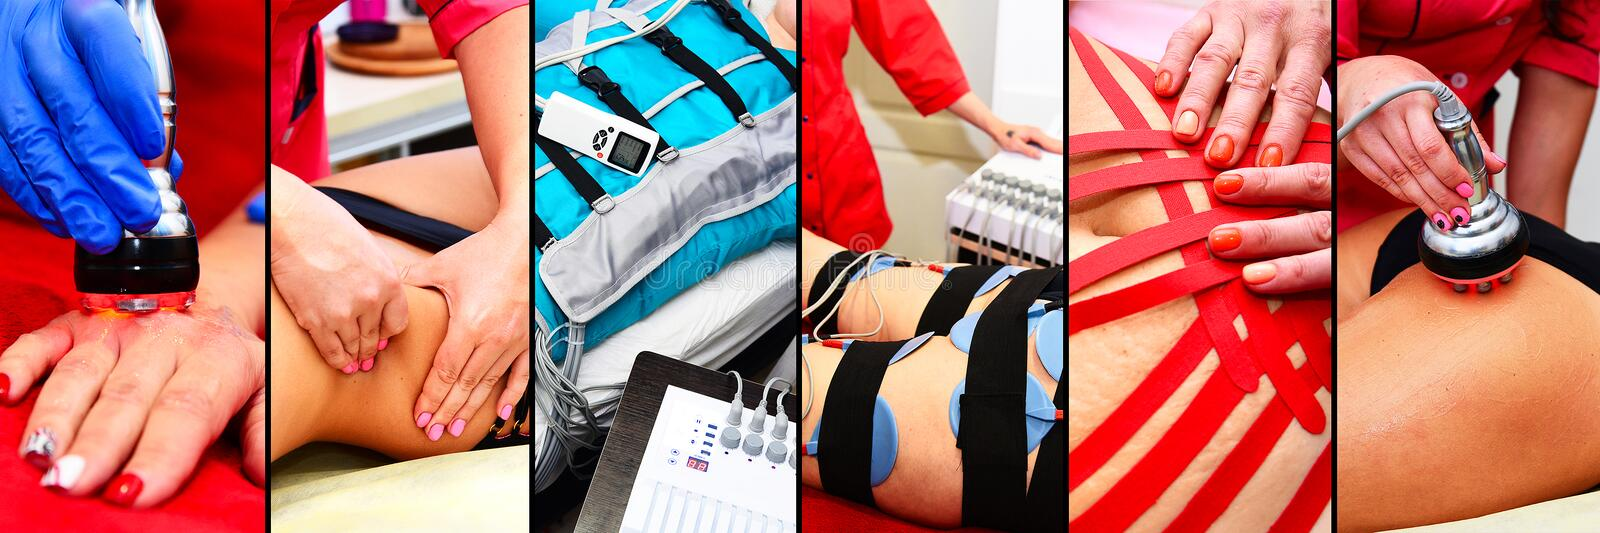 Different types of hardware spa procedures for cellulite reduction and weight loss. Myostimulation, vacuum massage, lipolaser, rad. Iofraction lifting. Collage stock photos